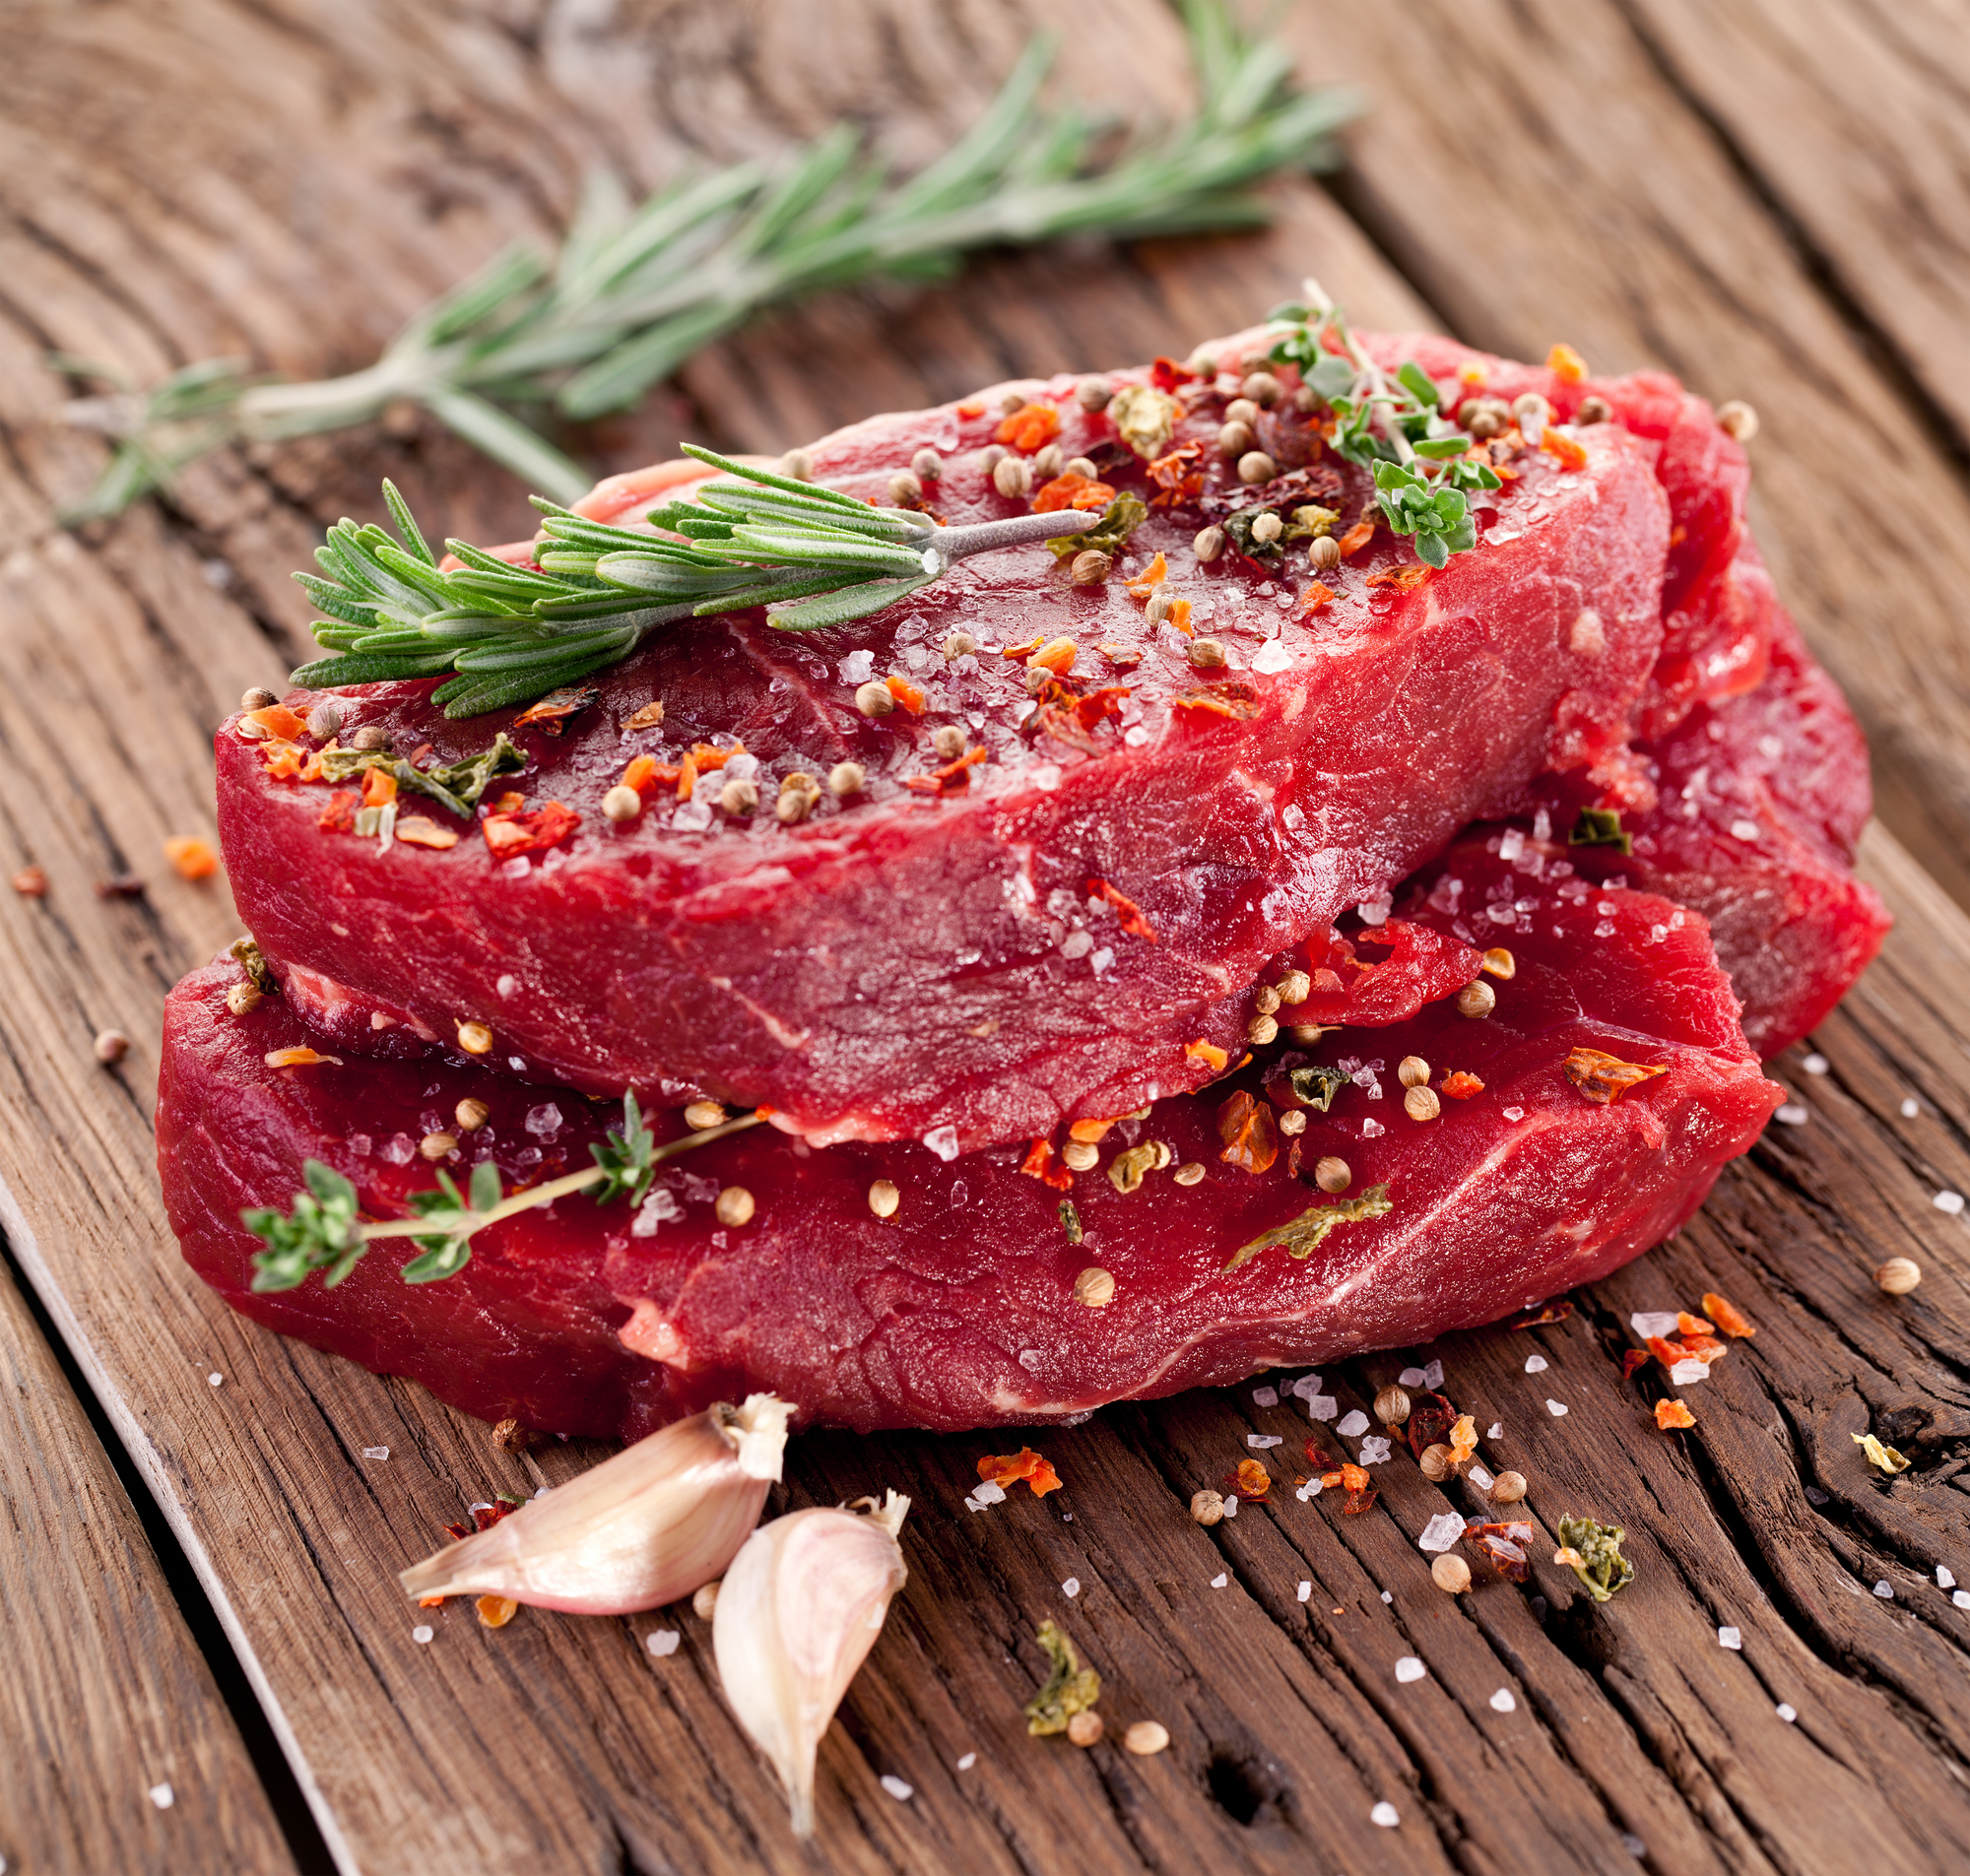 Raw beef steaks on a table top with sprig of rosemary and garlic